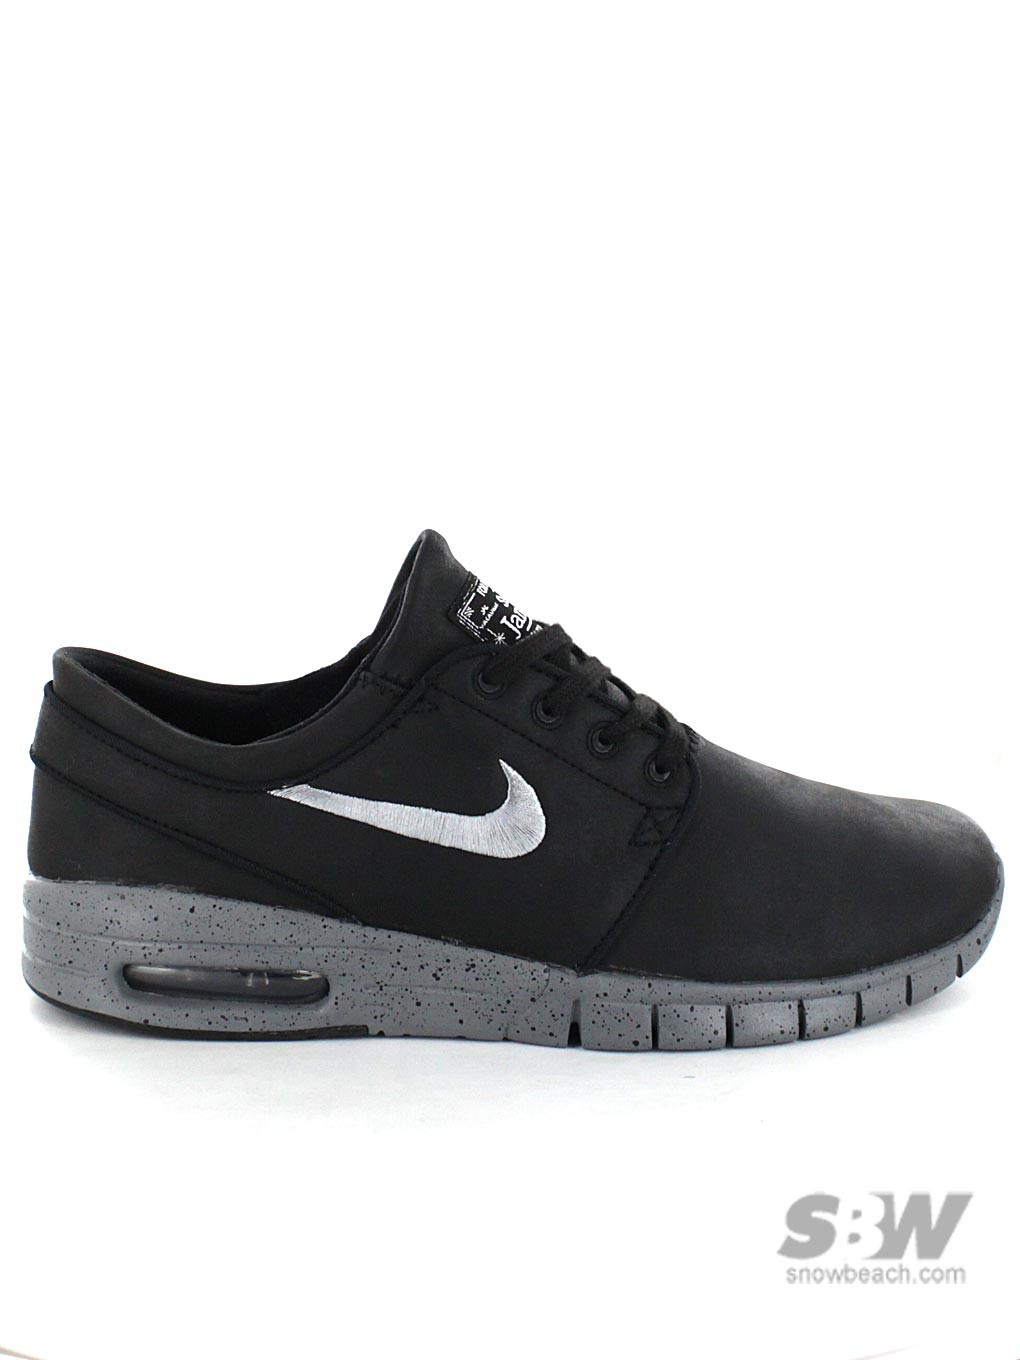 official photos d039e 557ce NIKE SB STEFAN JANOSKI MAX L QS NYC black mettalic cool grey cool grey